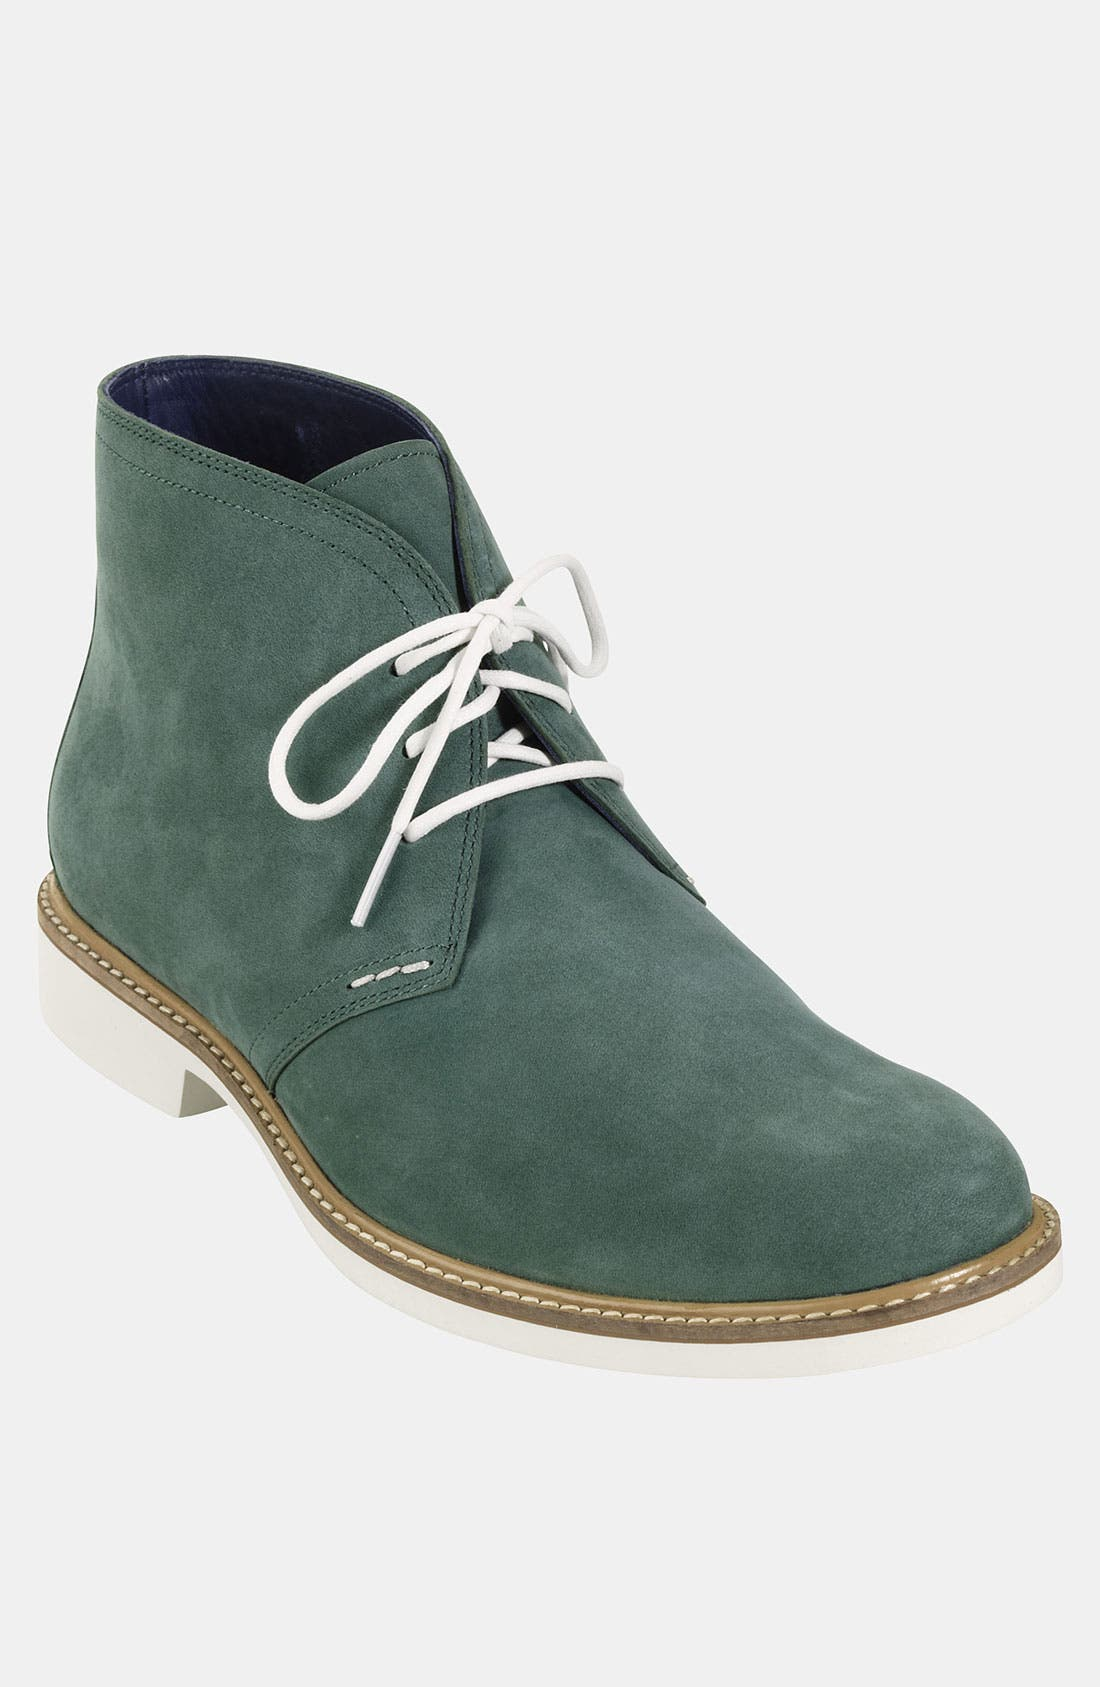 Main Image - Cole Haan 'Great Jones' Chukka Boot